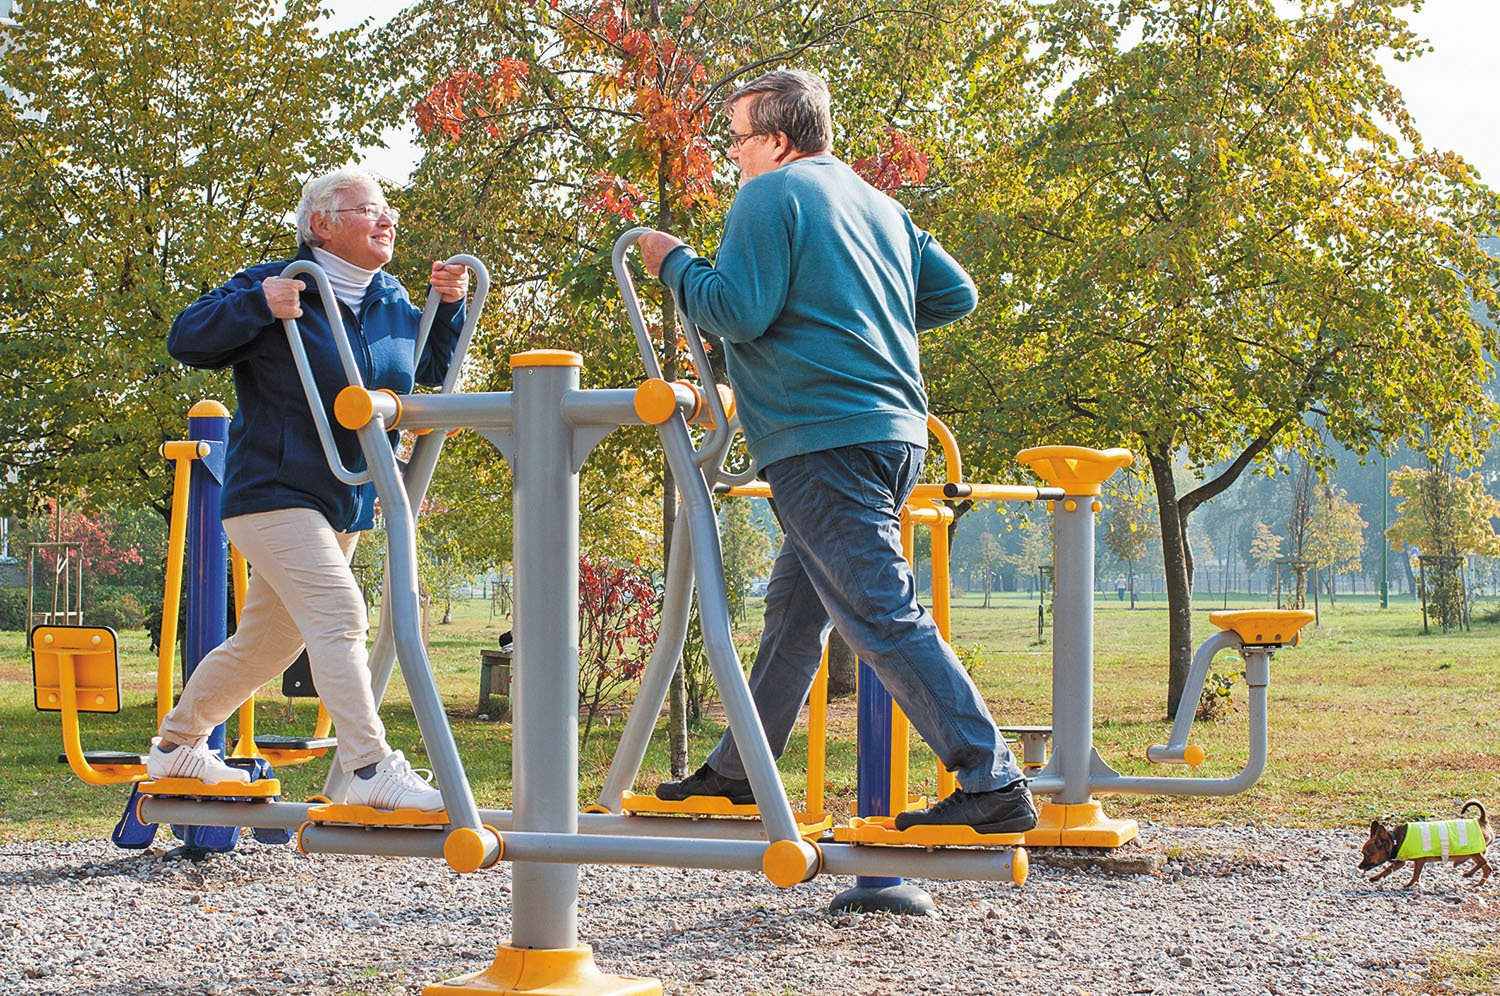 playground for elderly boosts activity and decreases loneliness